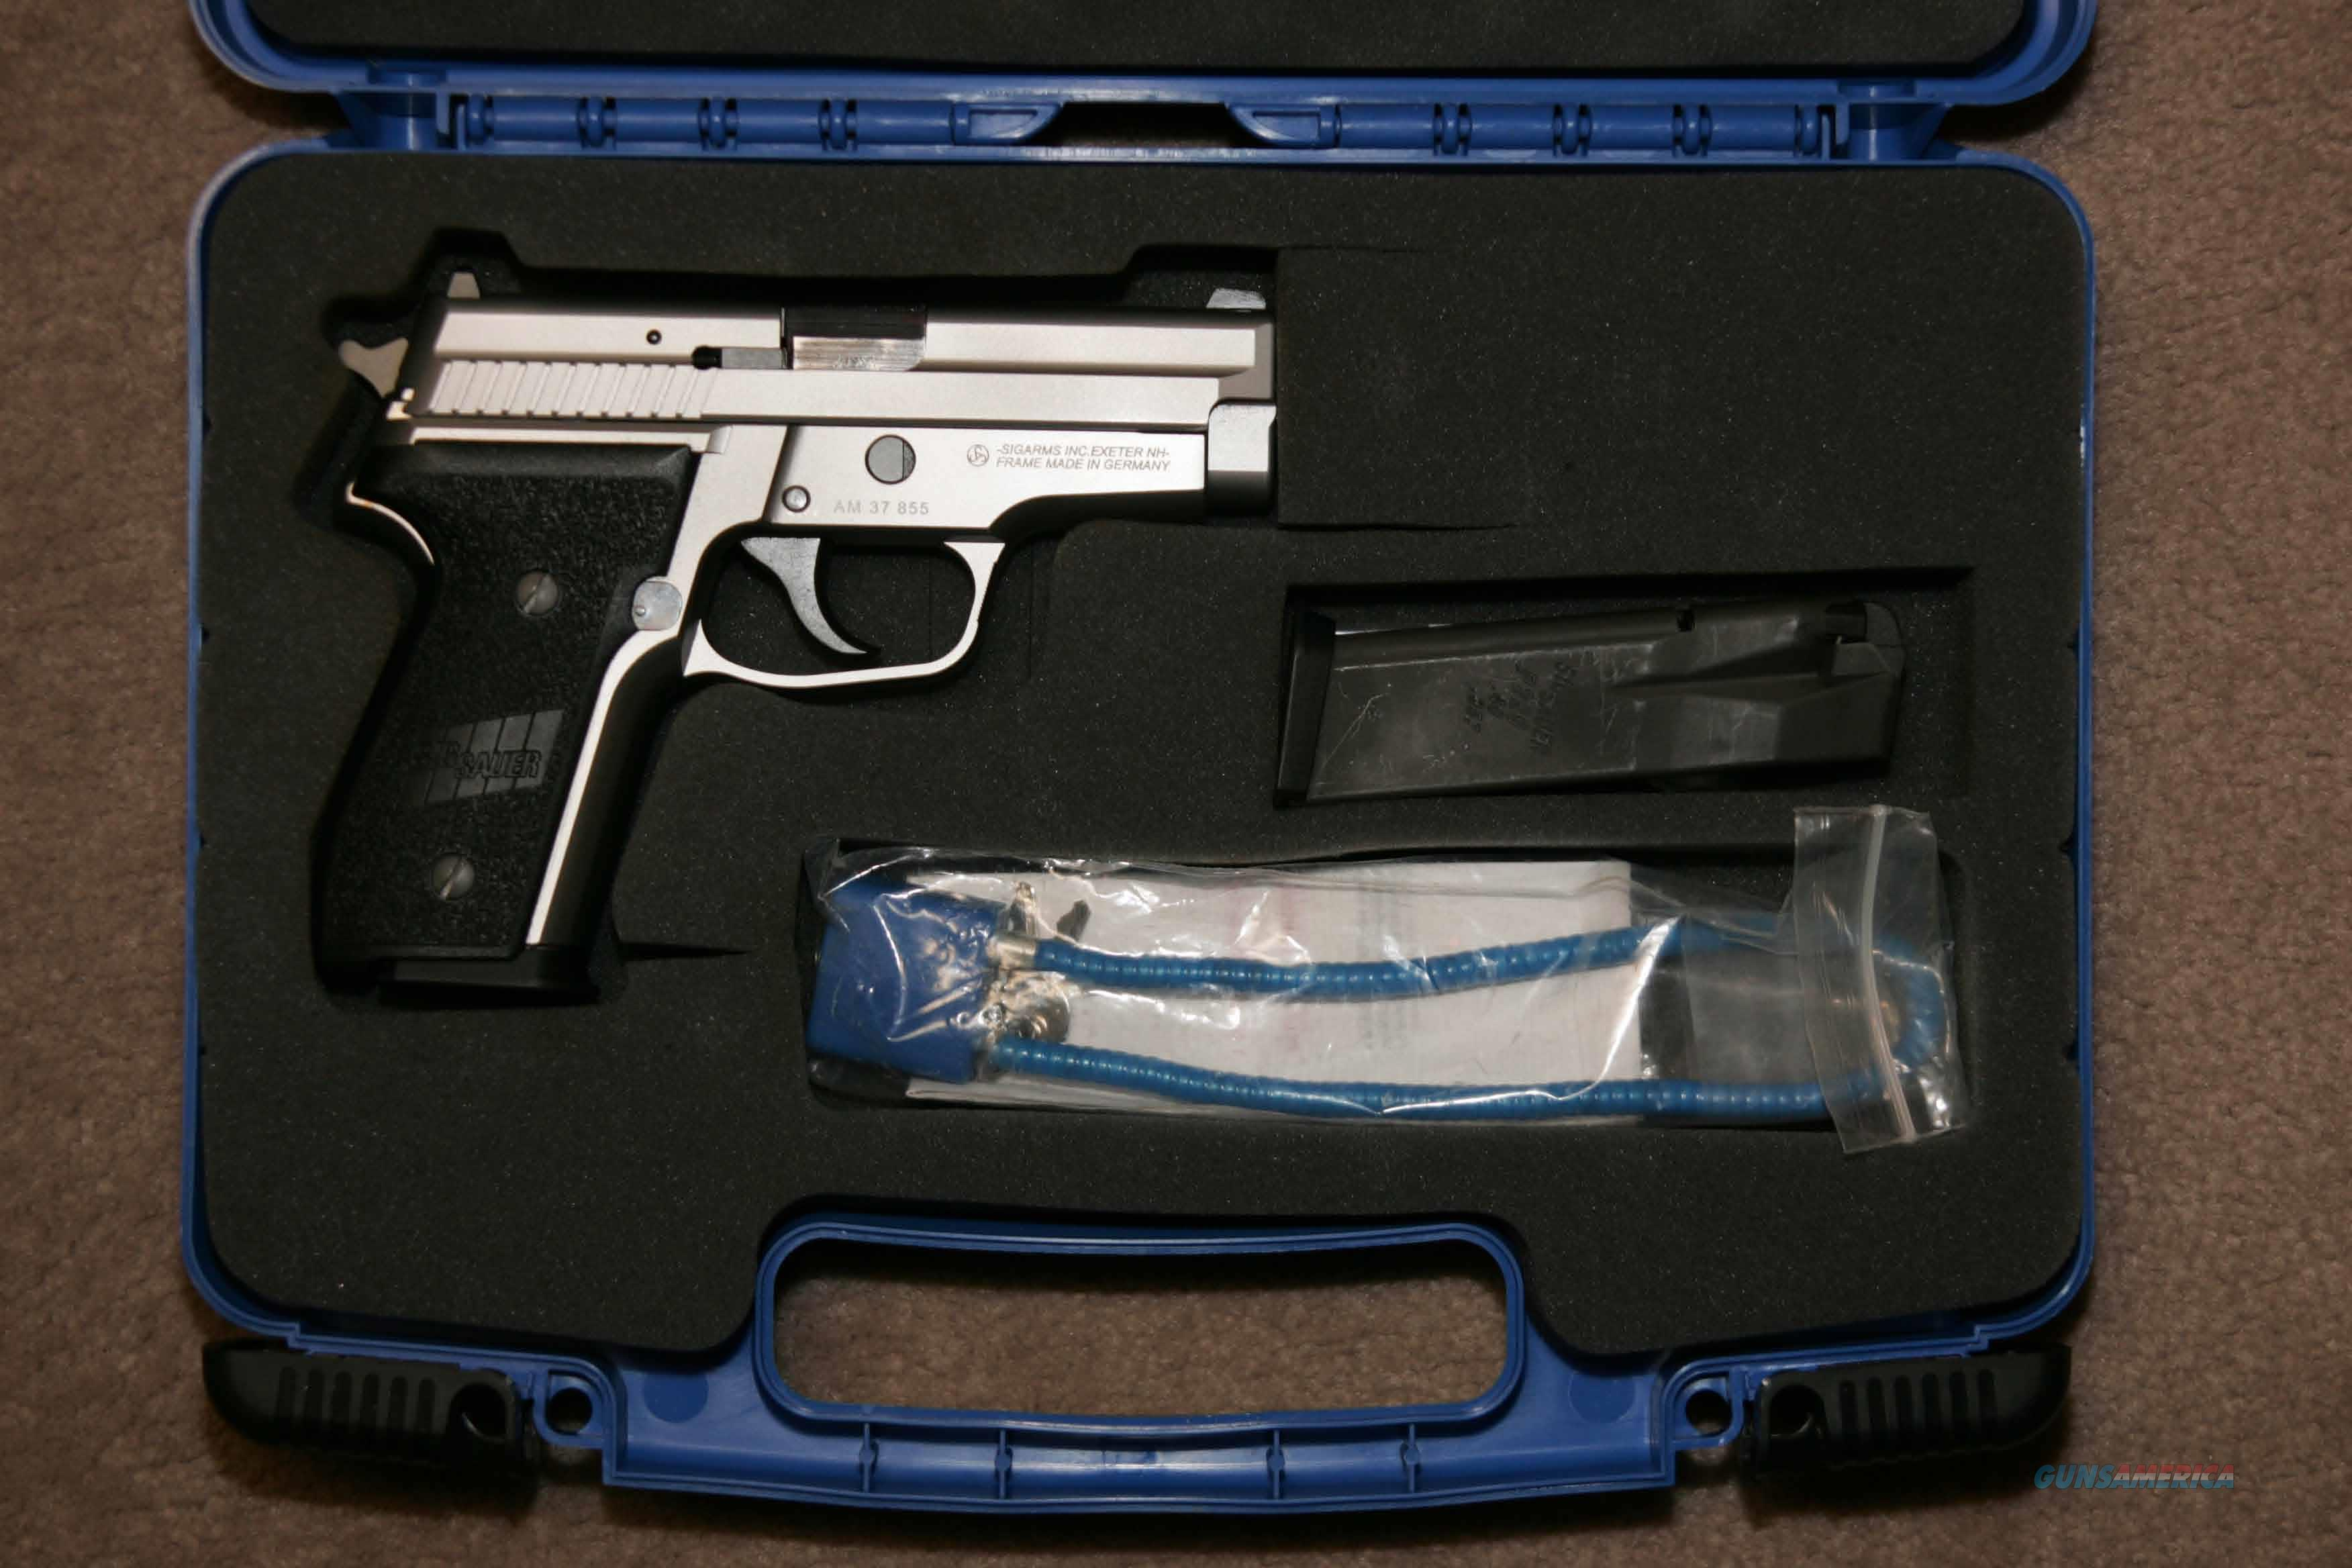 Sig 229 All Stainless Steel Frame and Slide  Guns > Pistols > Sig - Sauer/Sigarms Pistols > P229